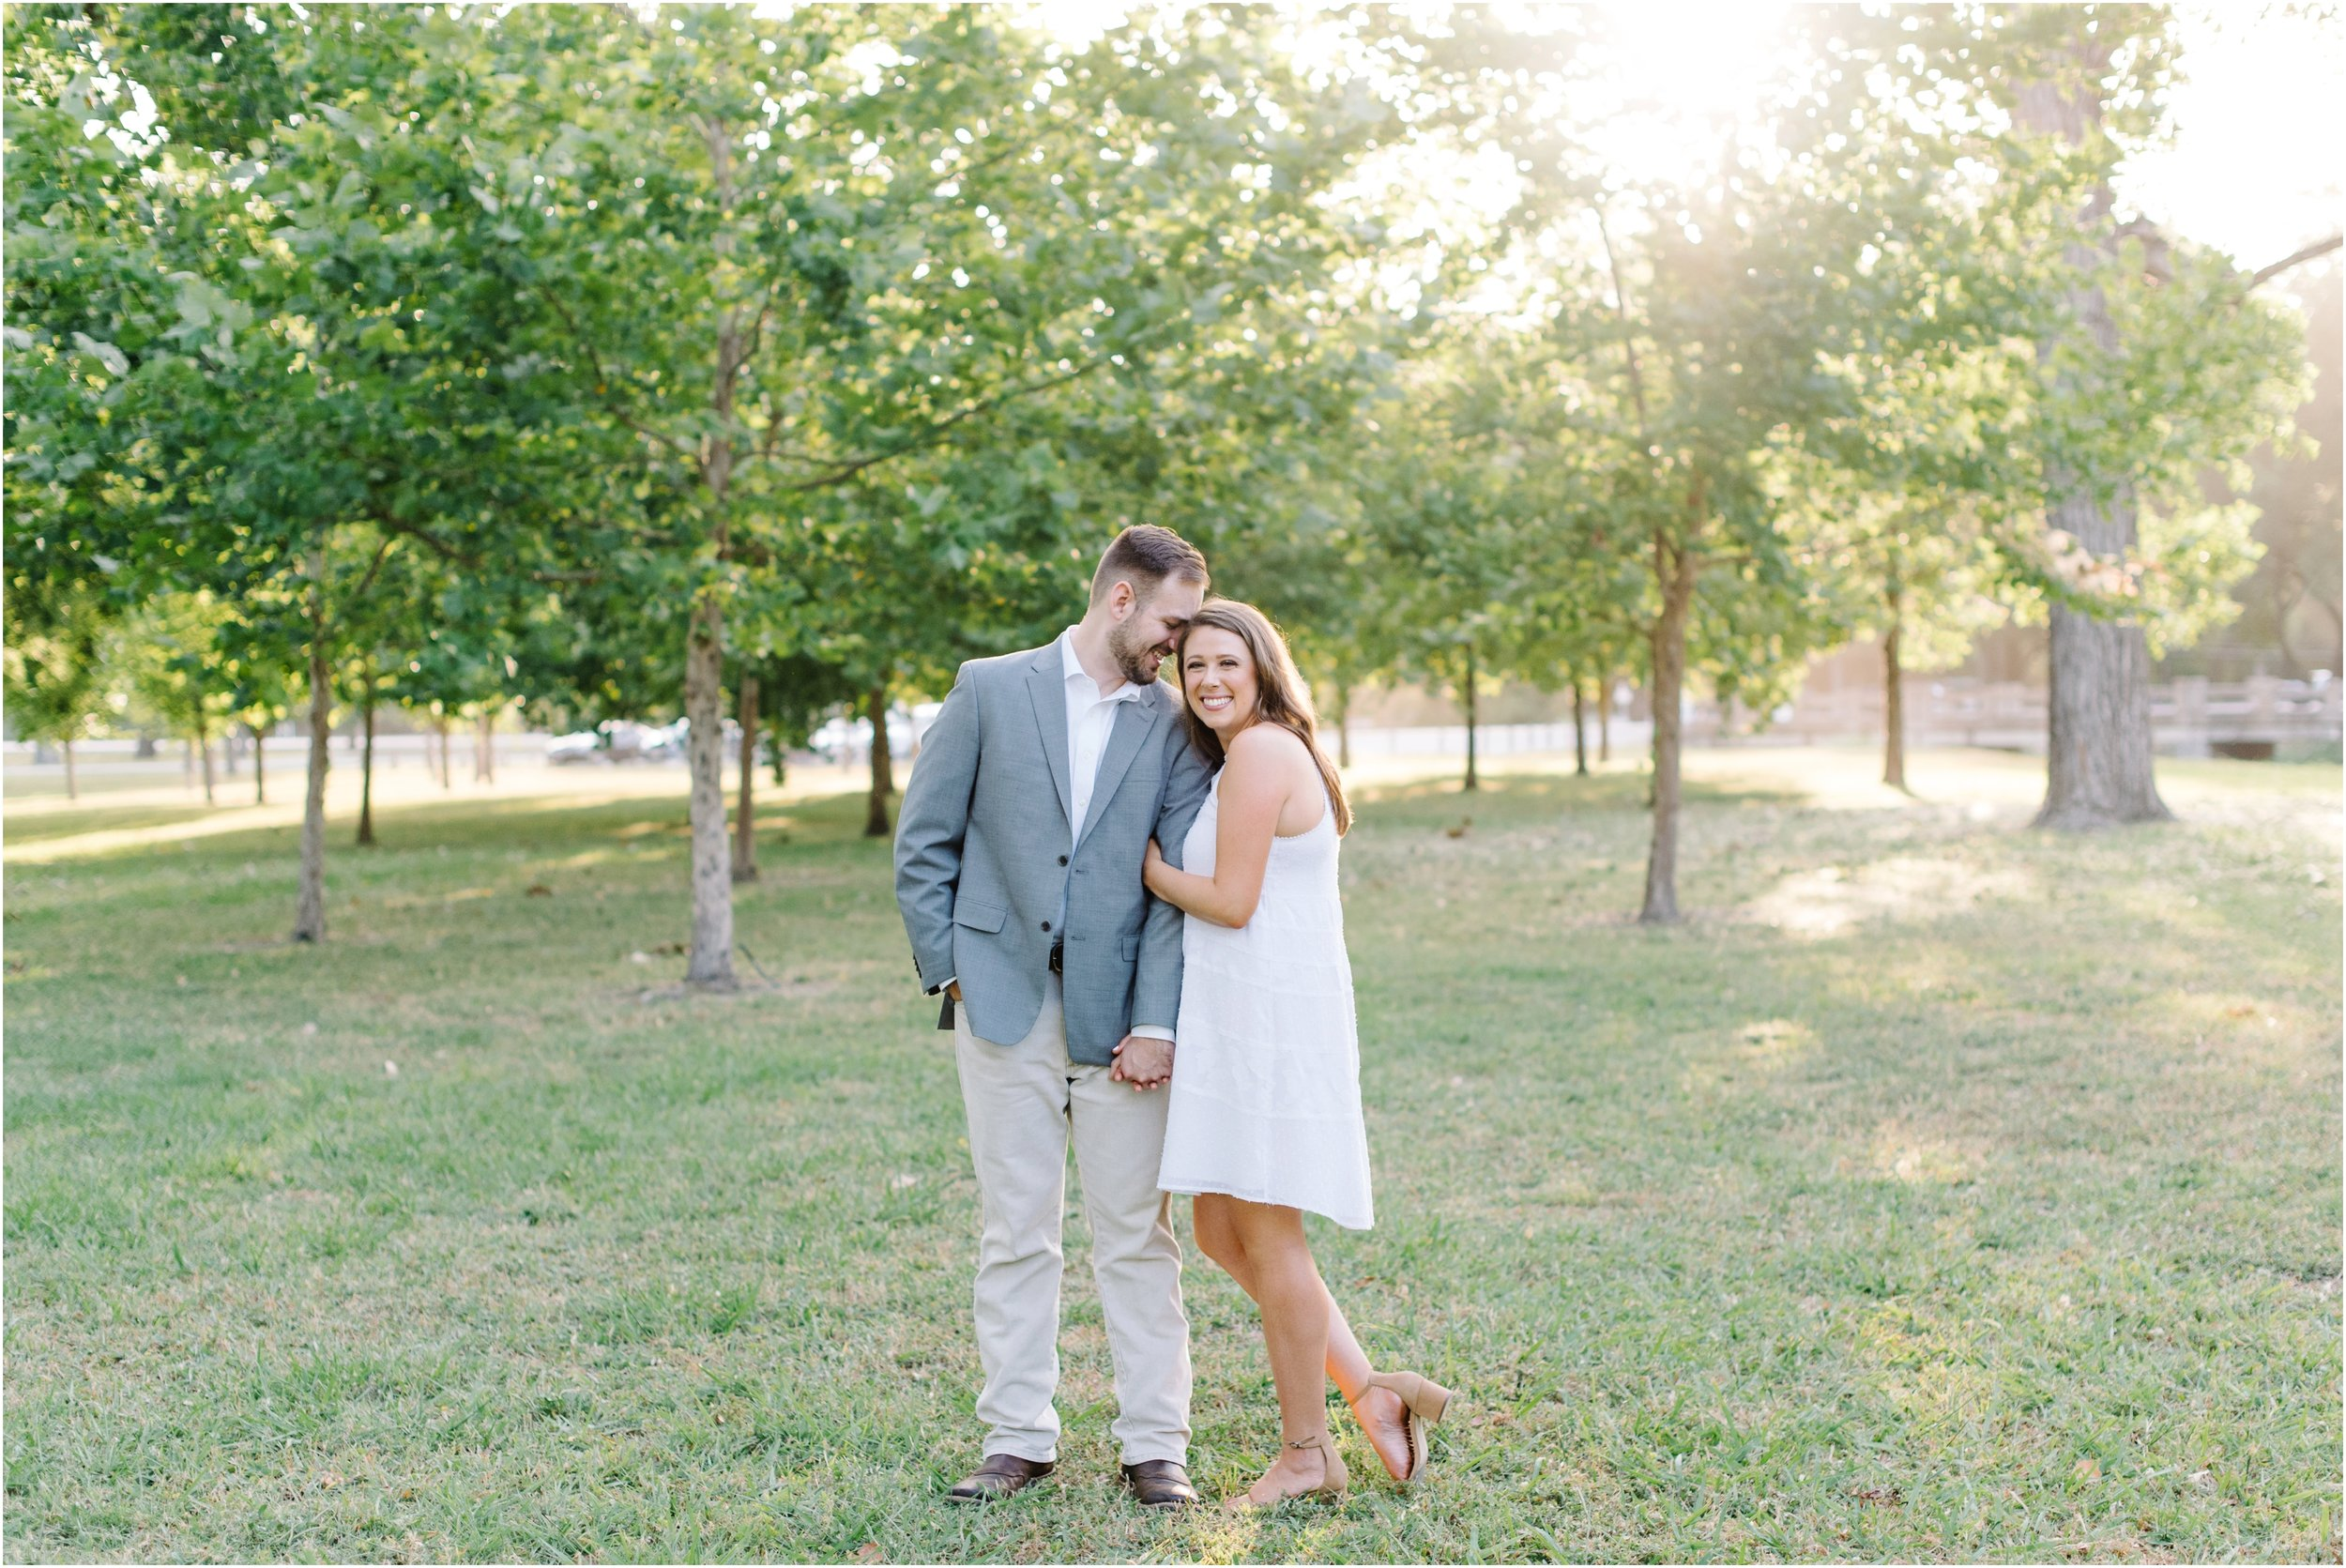 dallasweddingphotographer_texasweddingphotographer_mattandjulieweddings_modernfortworth_fortworthweddingphotographer_0894.jpg